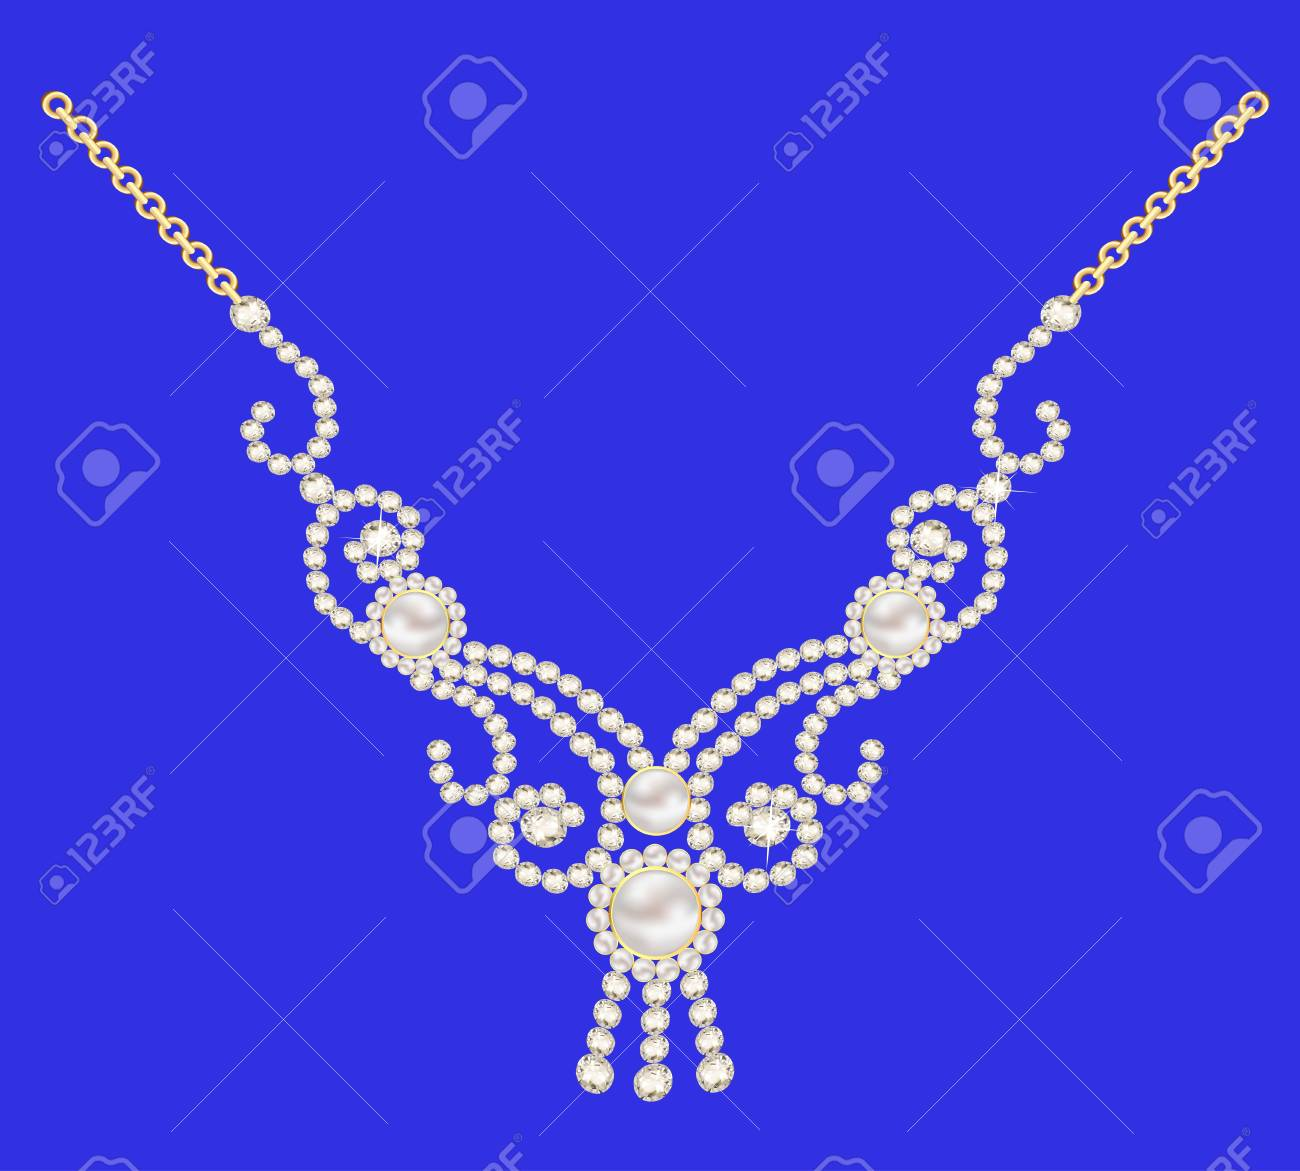 illustration necklace women for marriage with pearls and precious stones on a dark blue background Stock Vector - 18732509